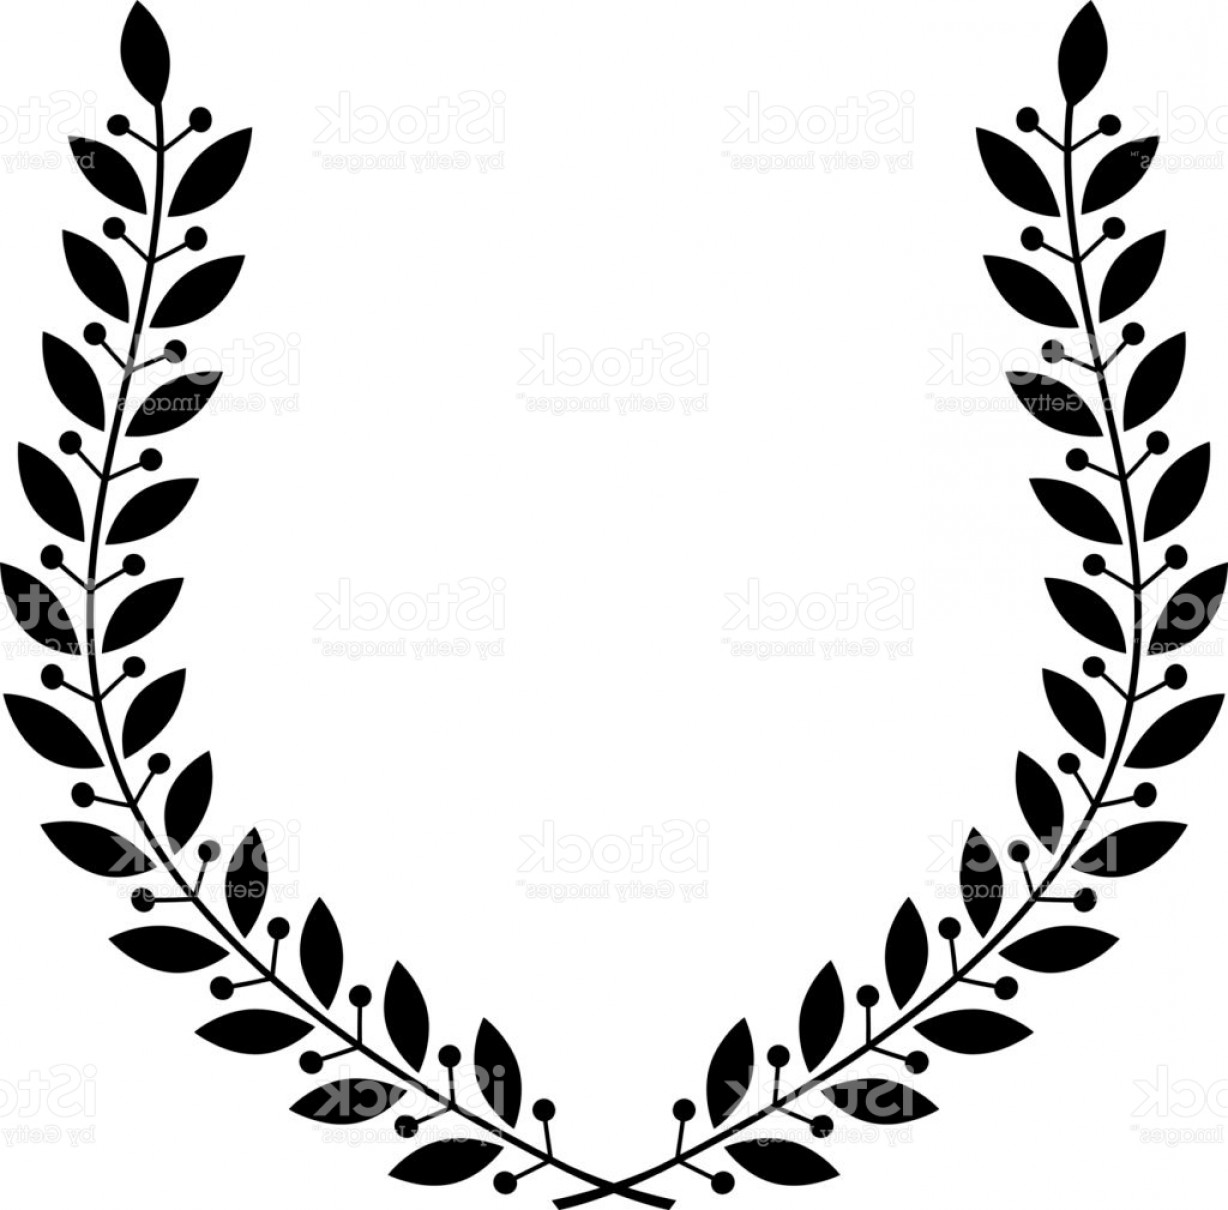 Award Vector Leaves: Laurel Wreath Floral Heraldic Element Heraldic Coat Of Arms Decorative Icon Isolated Gm